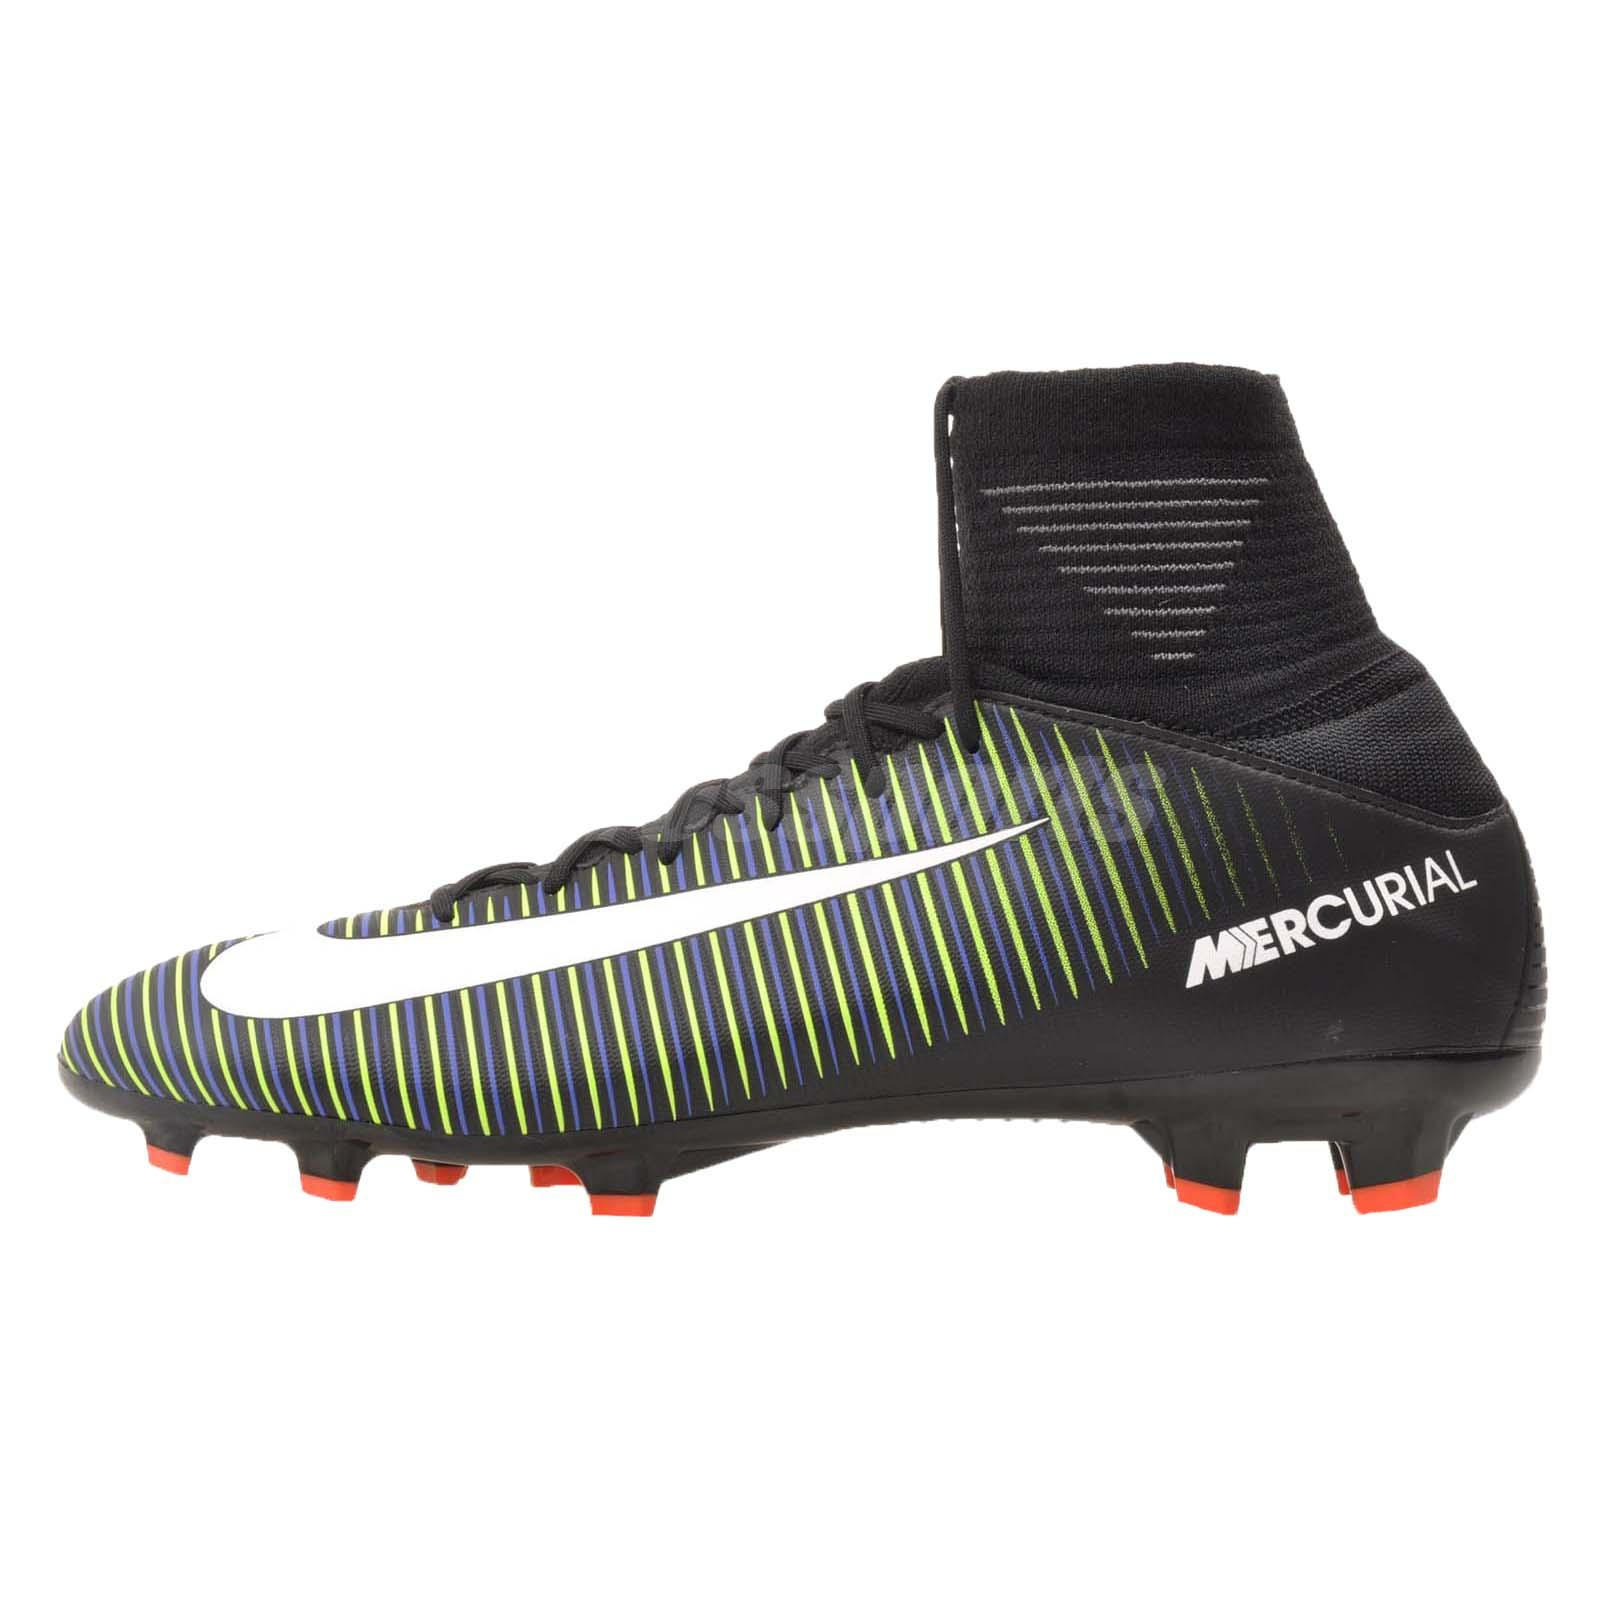 569367a4c Details about Nike JR Mercurial Superfly V FG Kids Youth Soccer Cleats  Black Green 831943-013